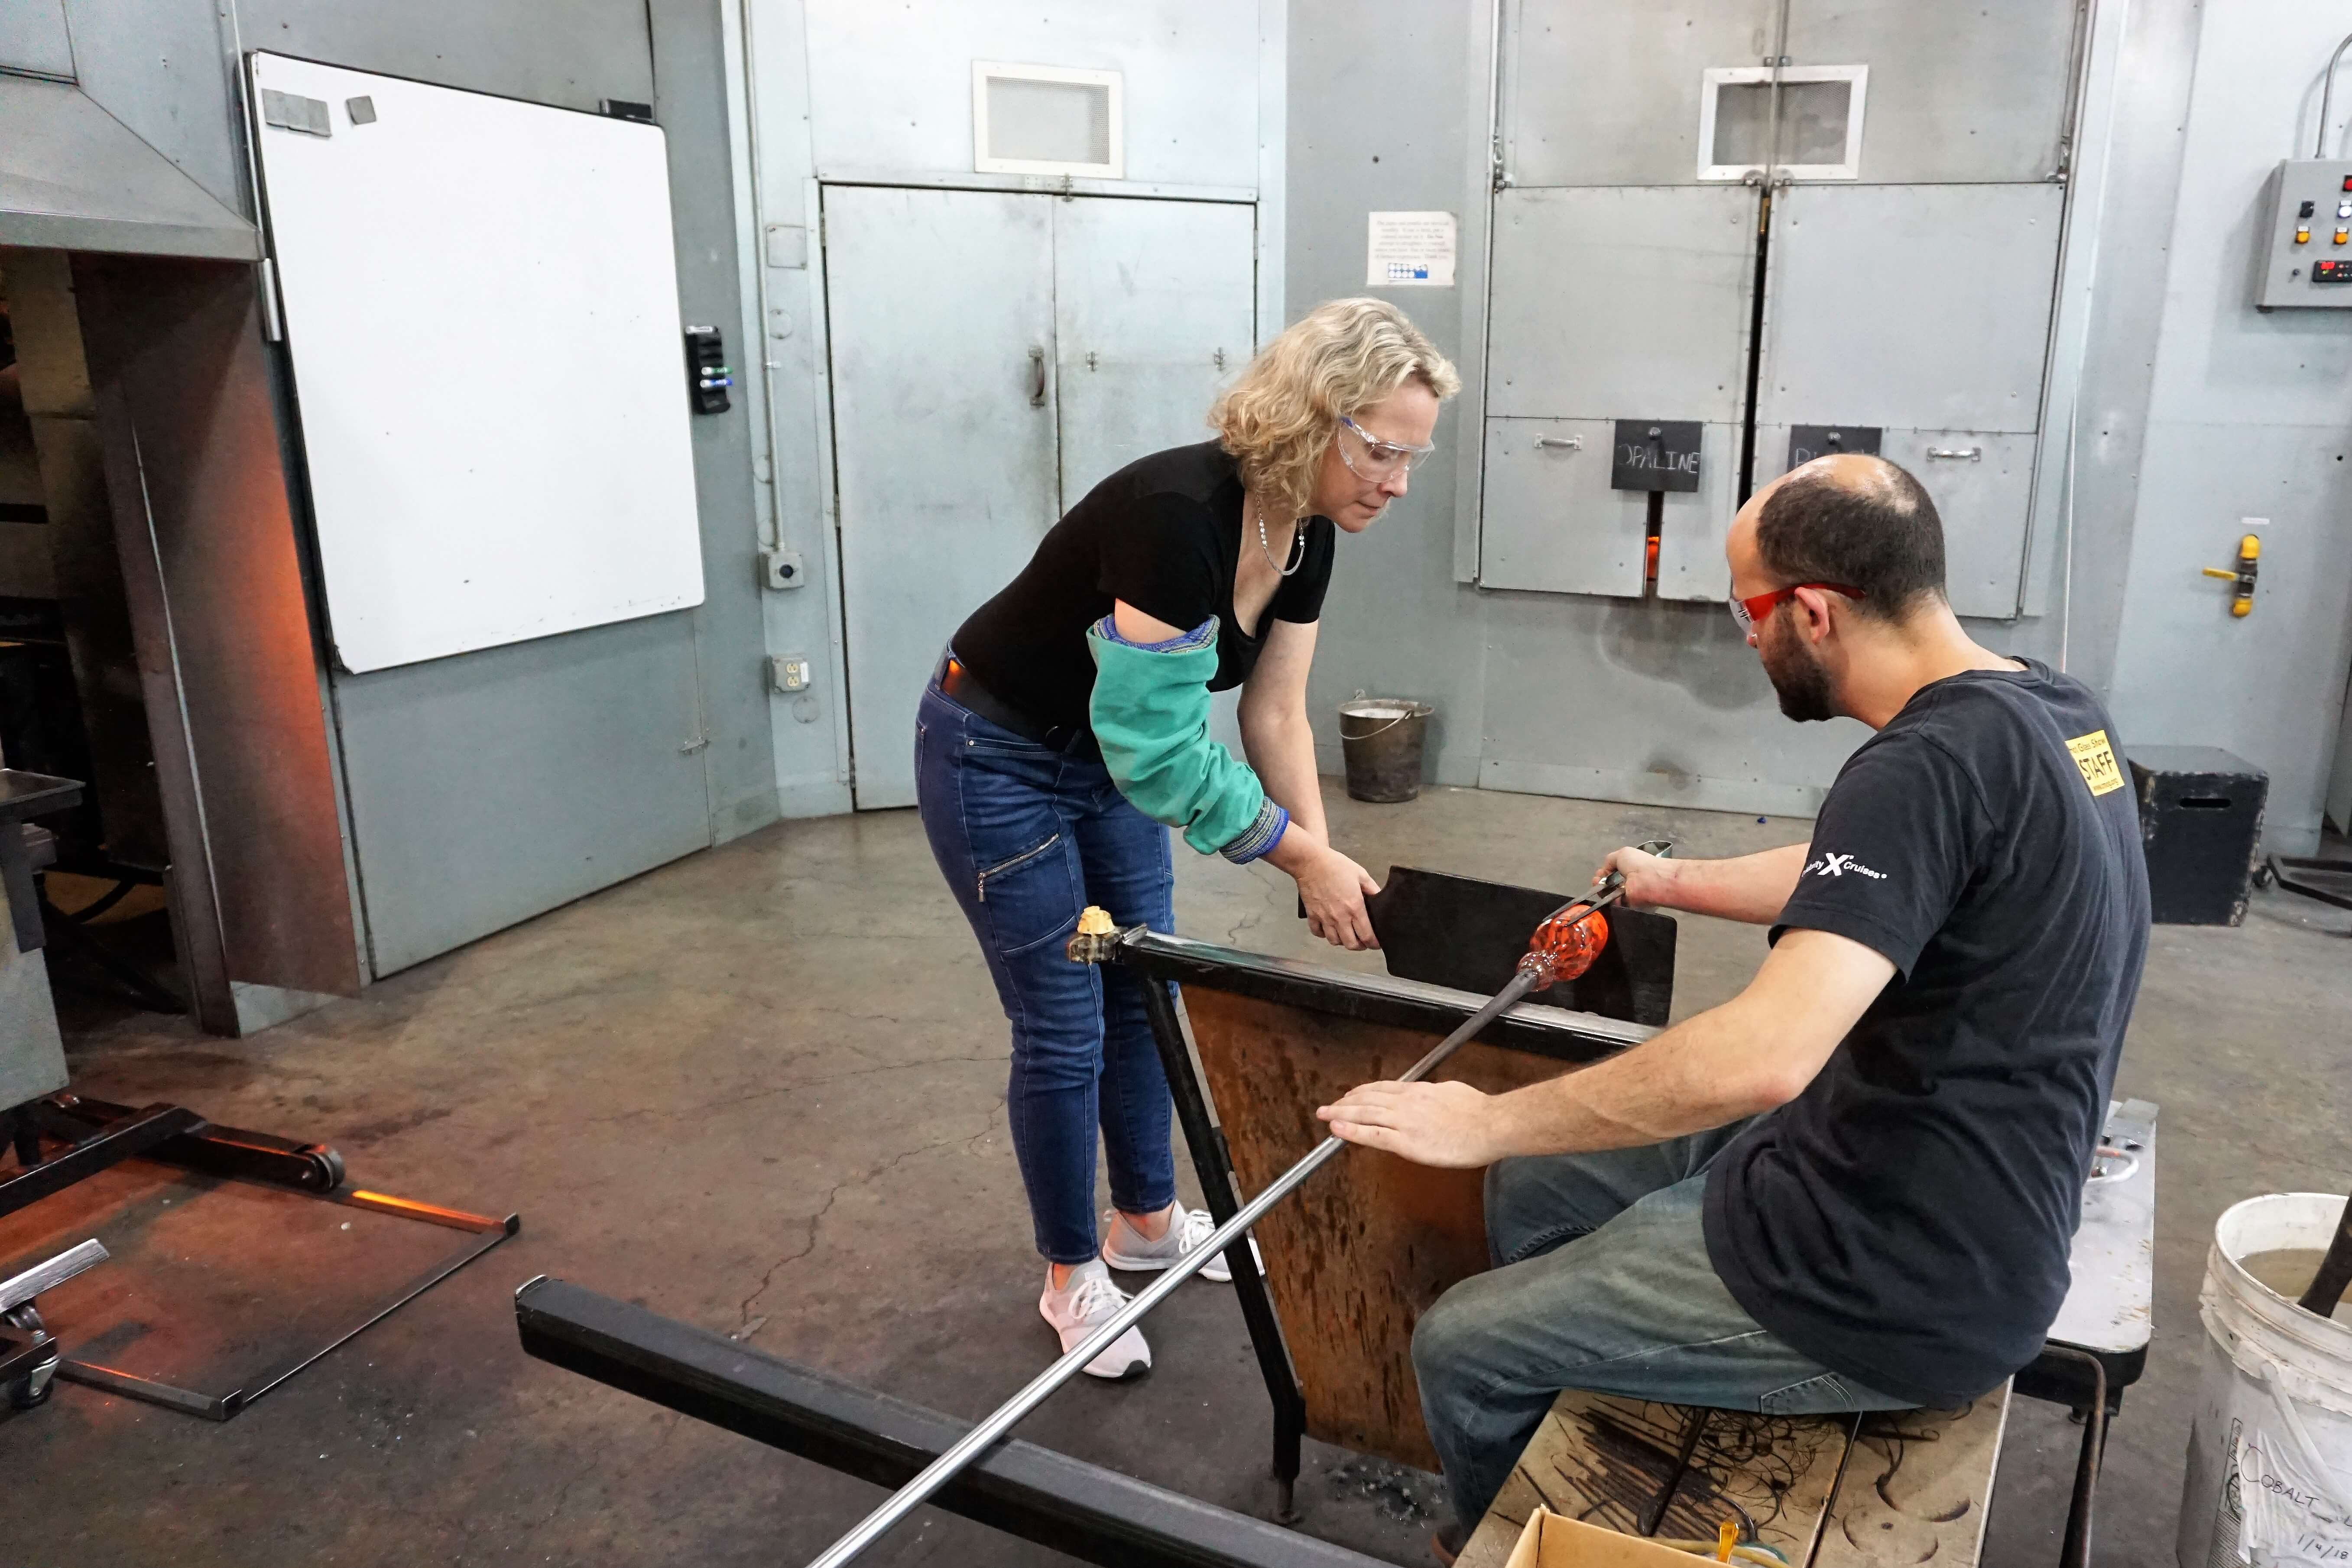 Wendy at a glass blowing class at Corning Museum of Glass